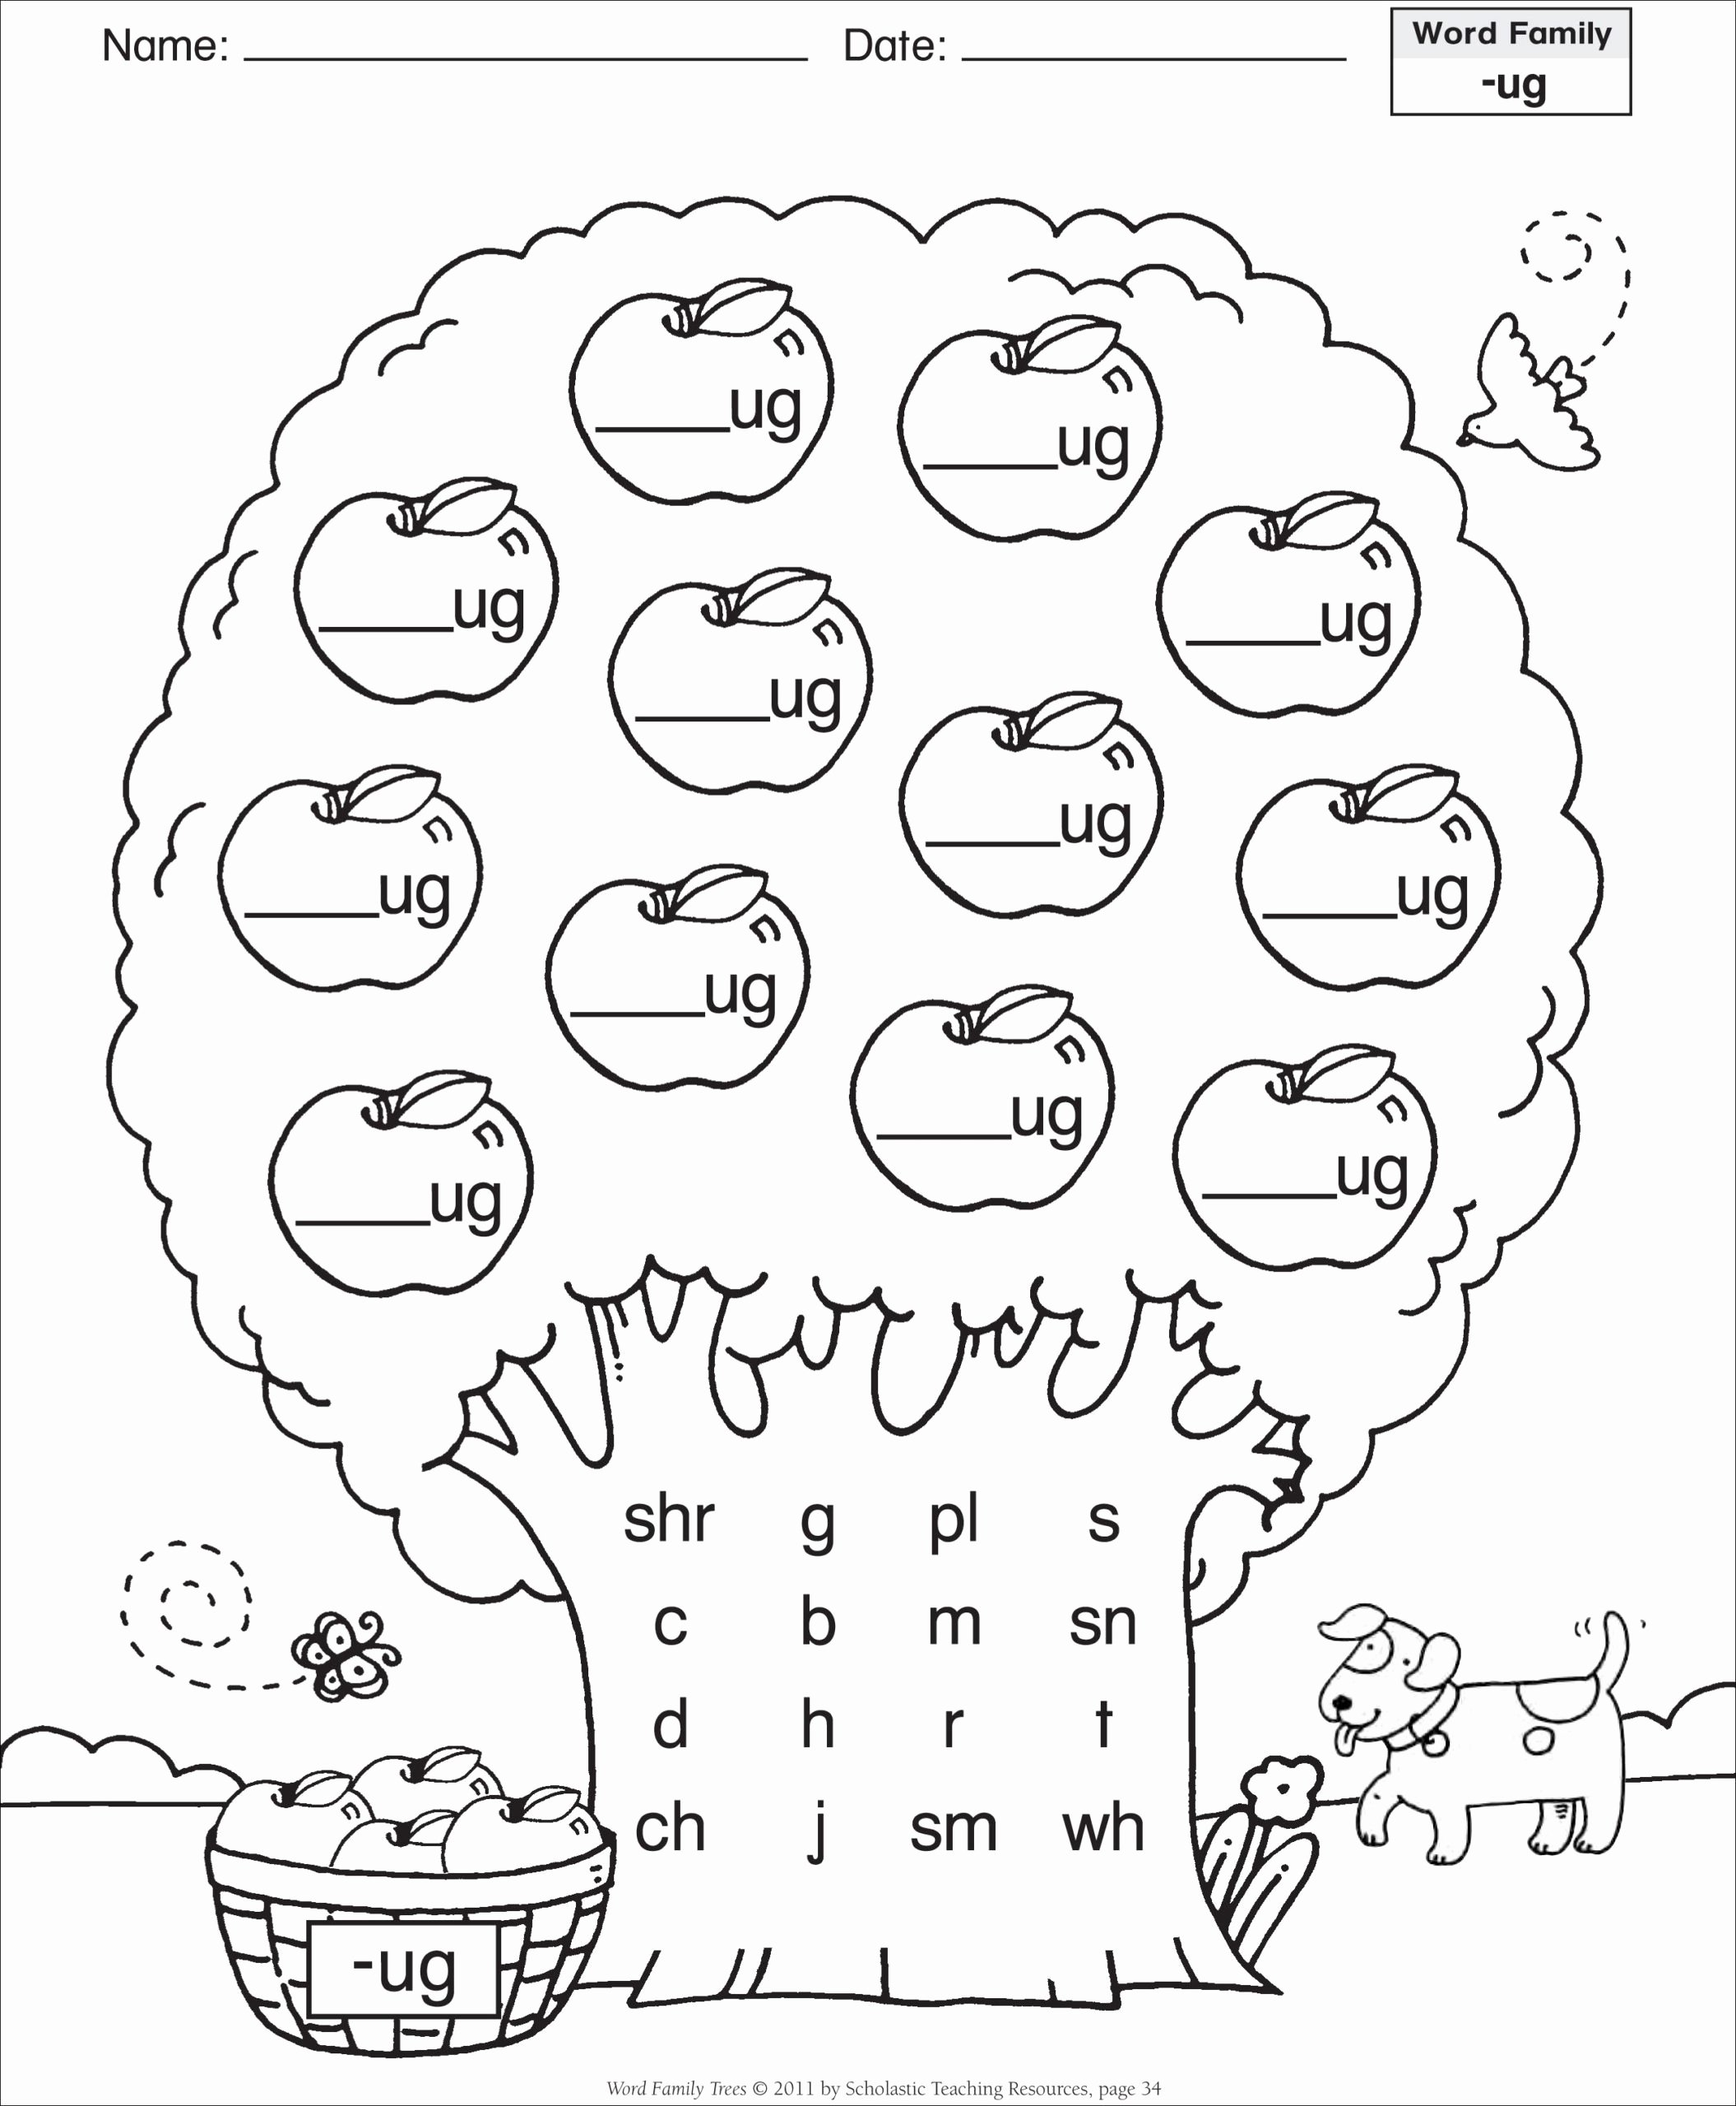 Ou Ow Worksheets 2nd Grade Best Of Short Vowel Ug Word Family Tree Families Reading Ou Ow